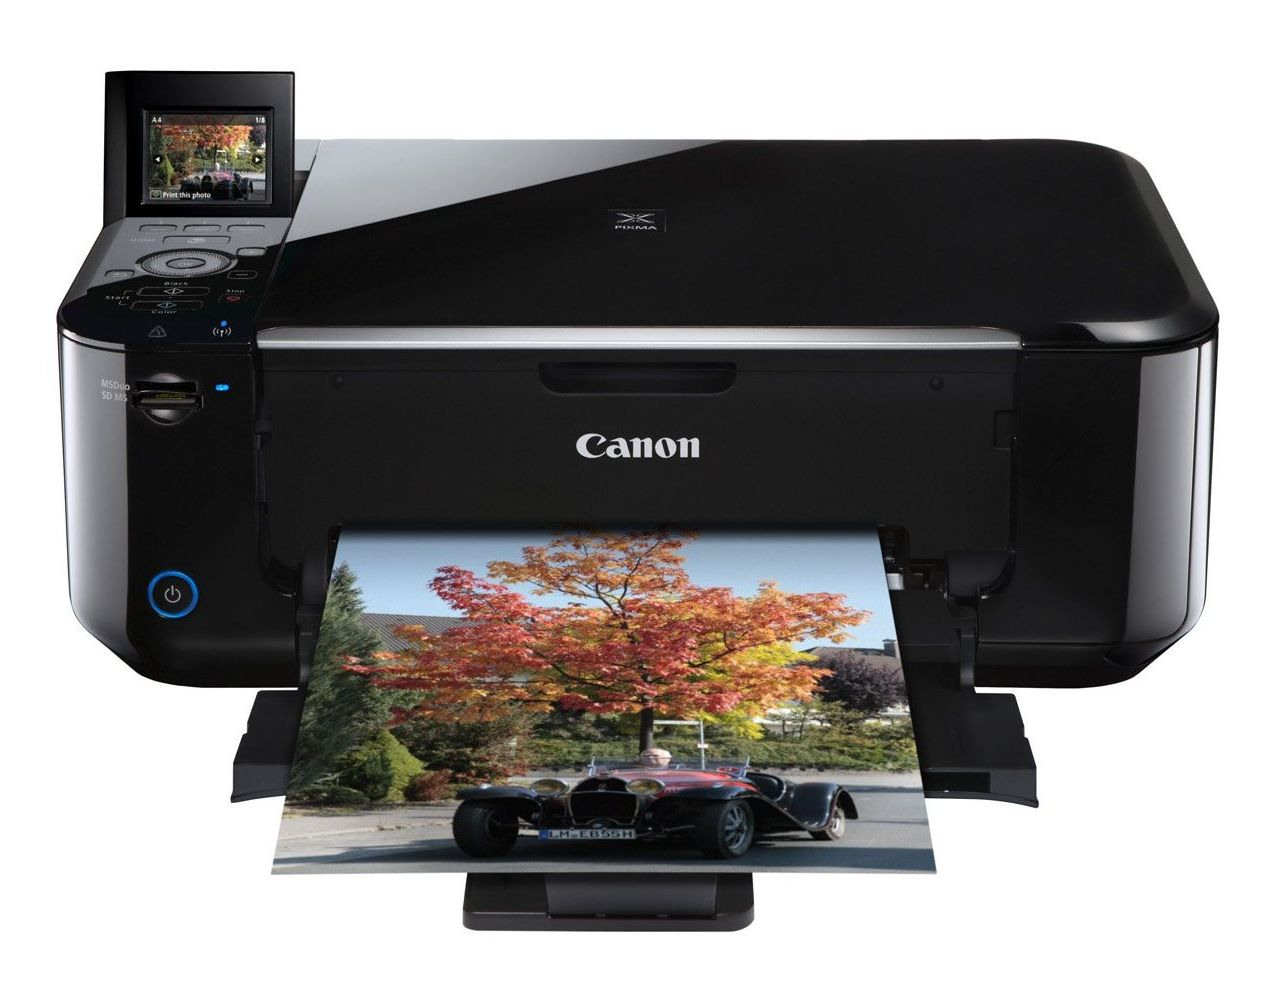 canon service center in padi, canon printer service center in padi